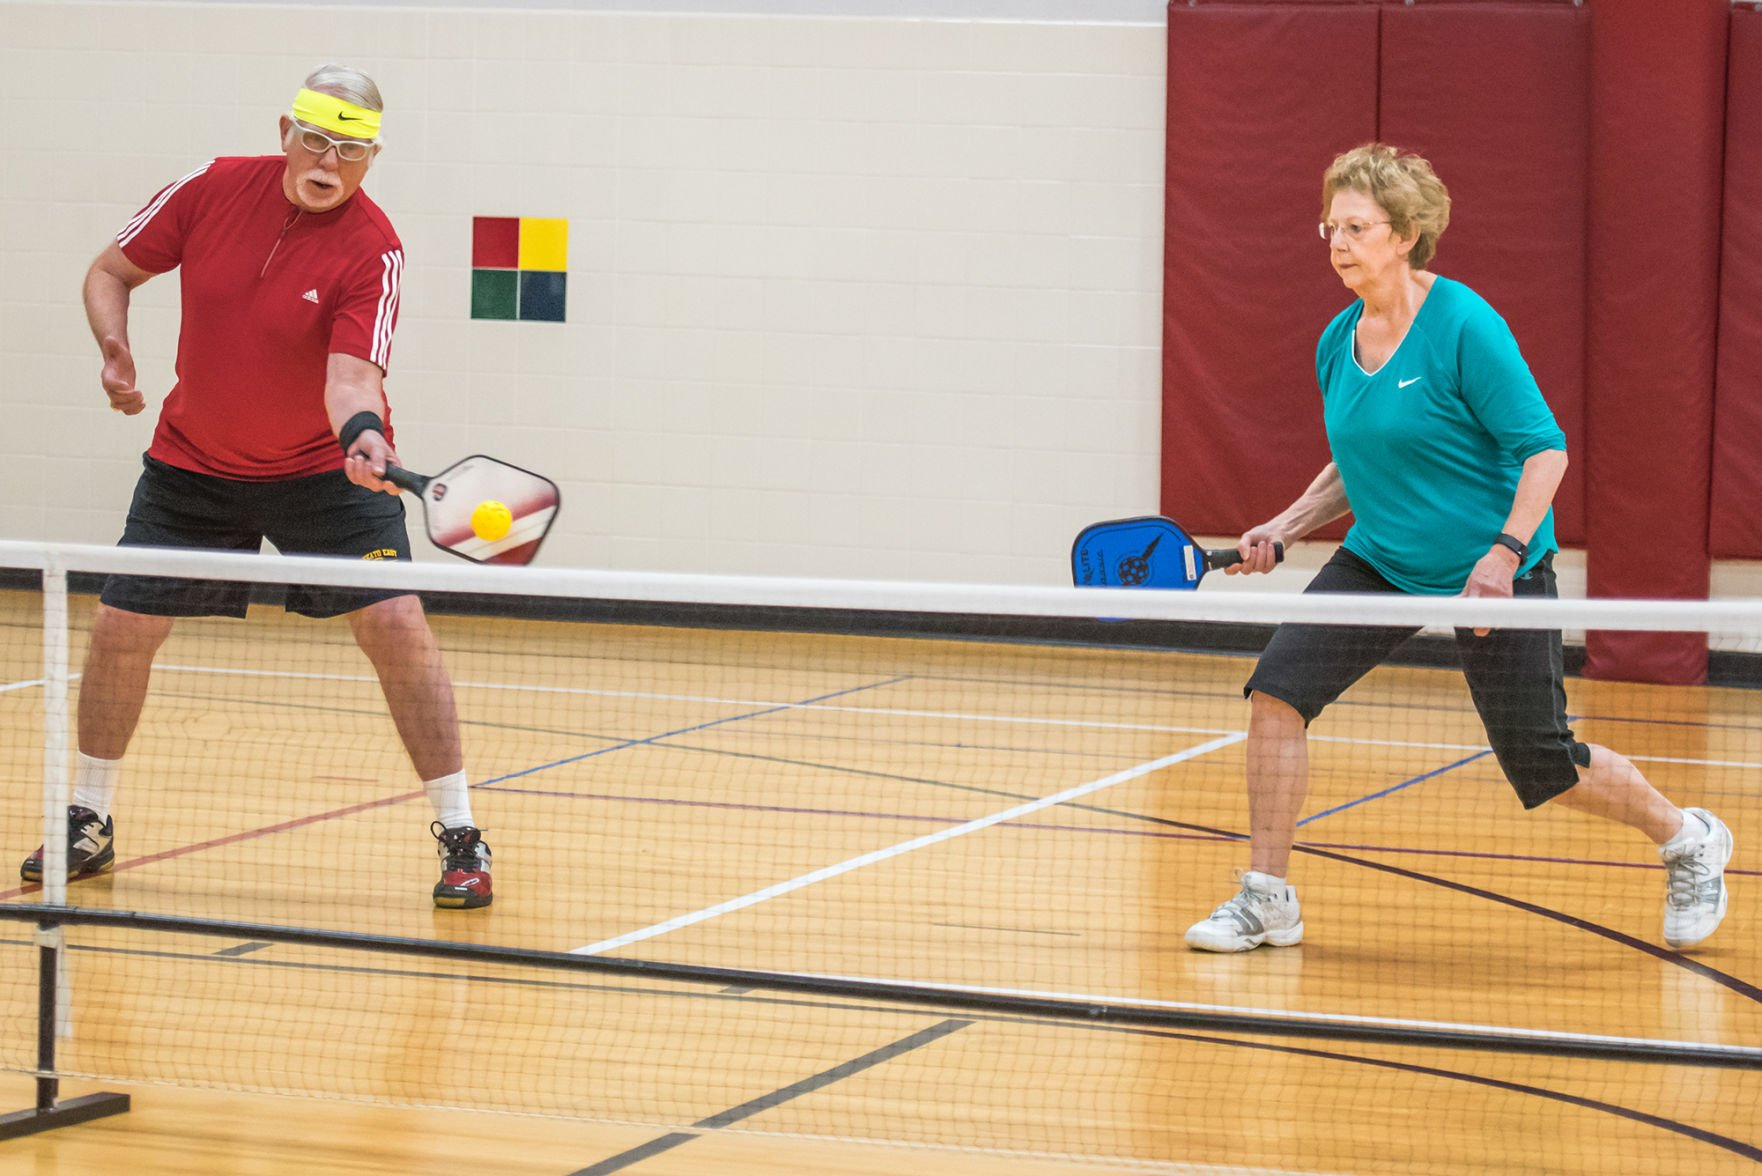 Mixed doubles badminton positions for sexual health